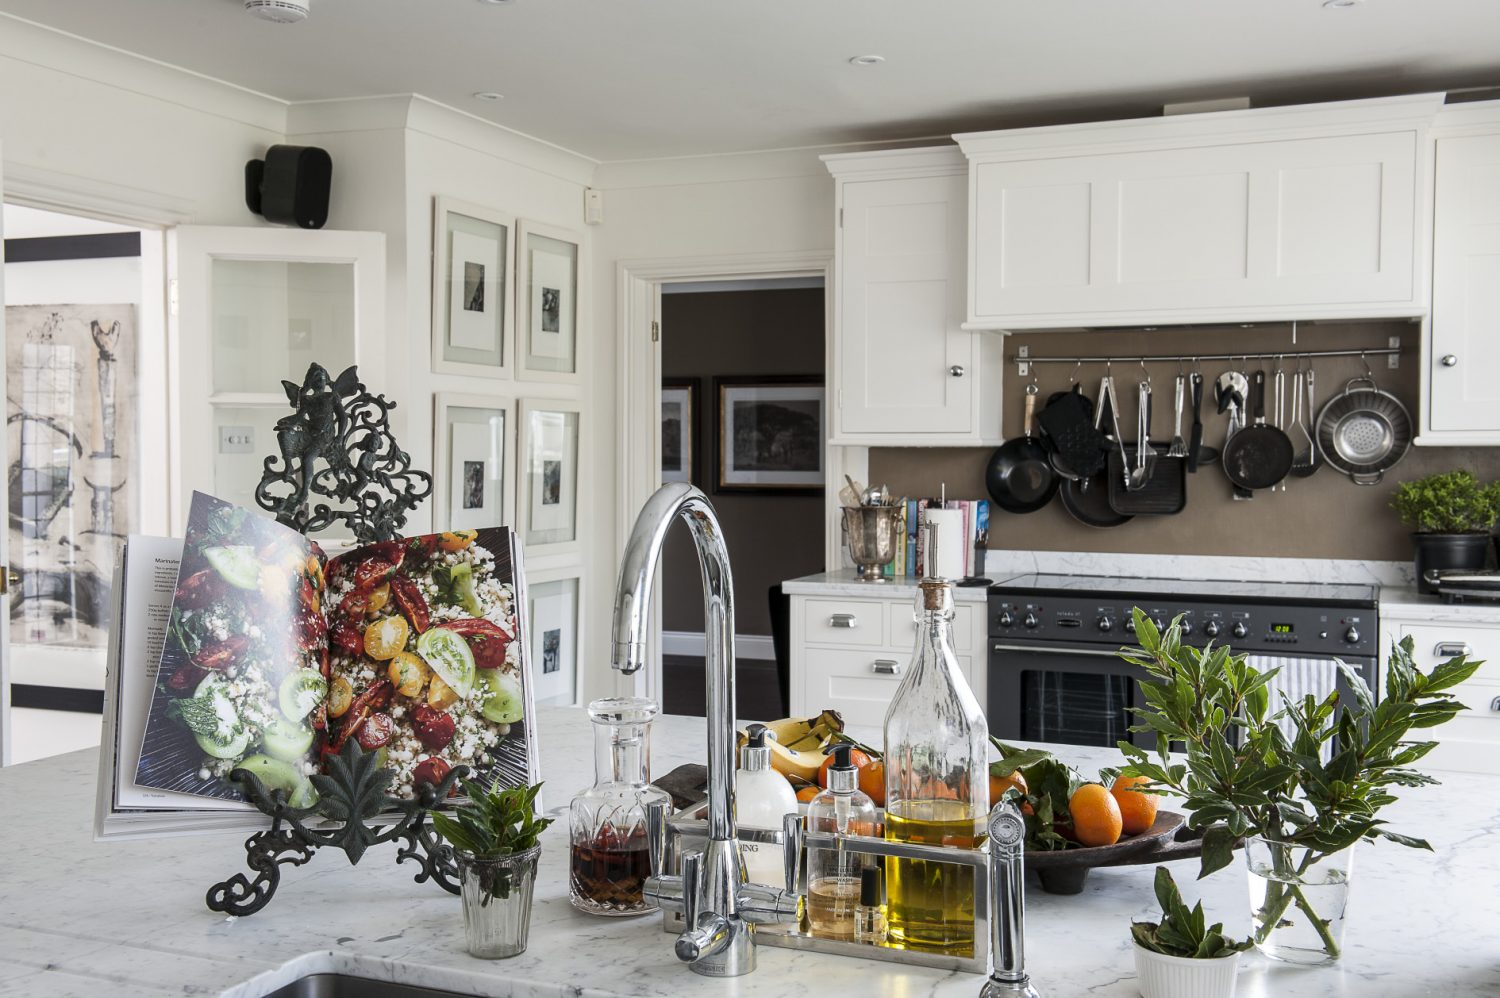 The only room that needed a major rethink when the couple moved in was the kitchen